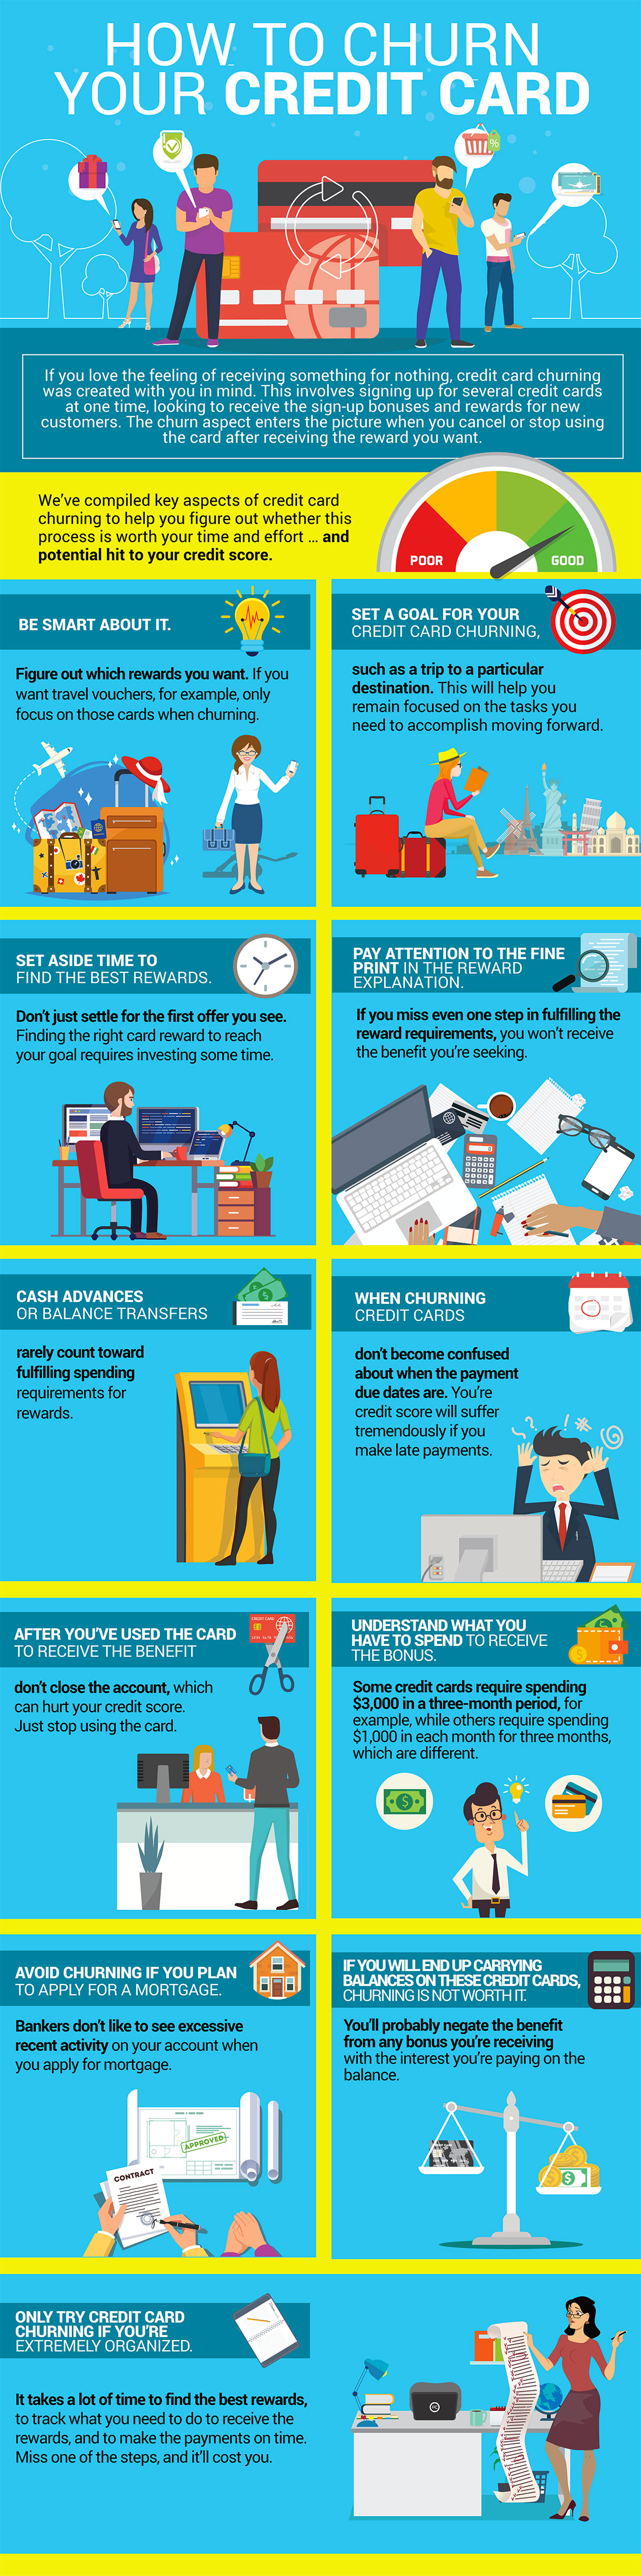 How to Churn Your Credit Card [Infographic]